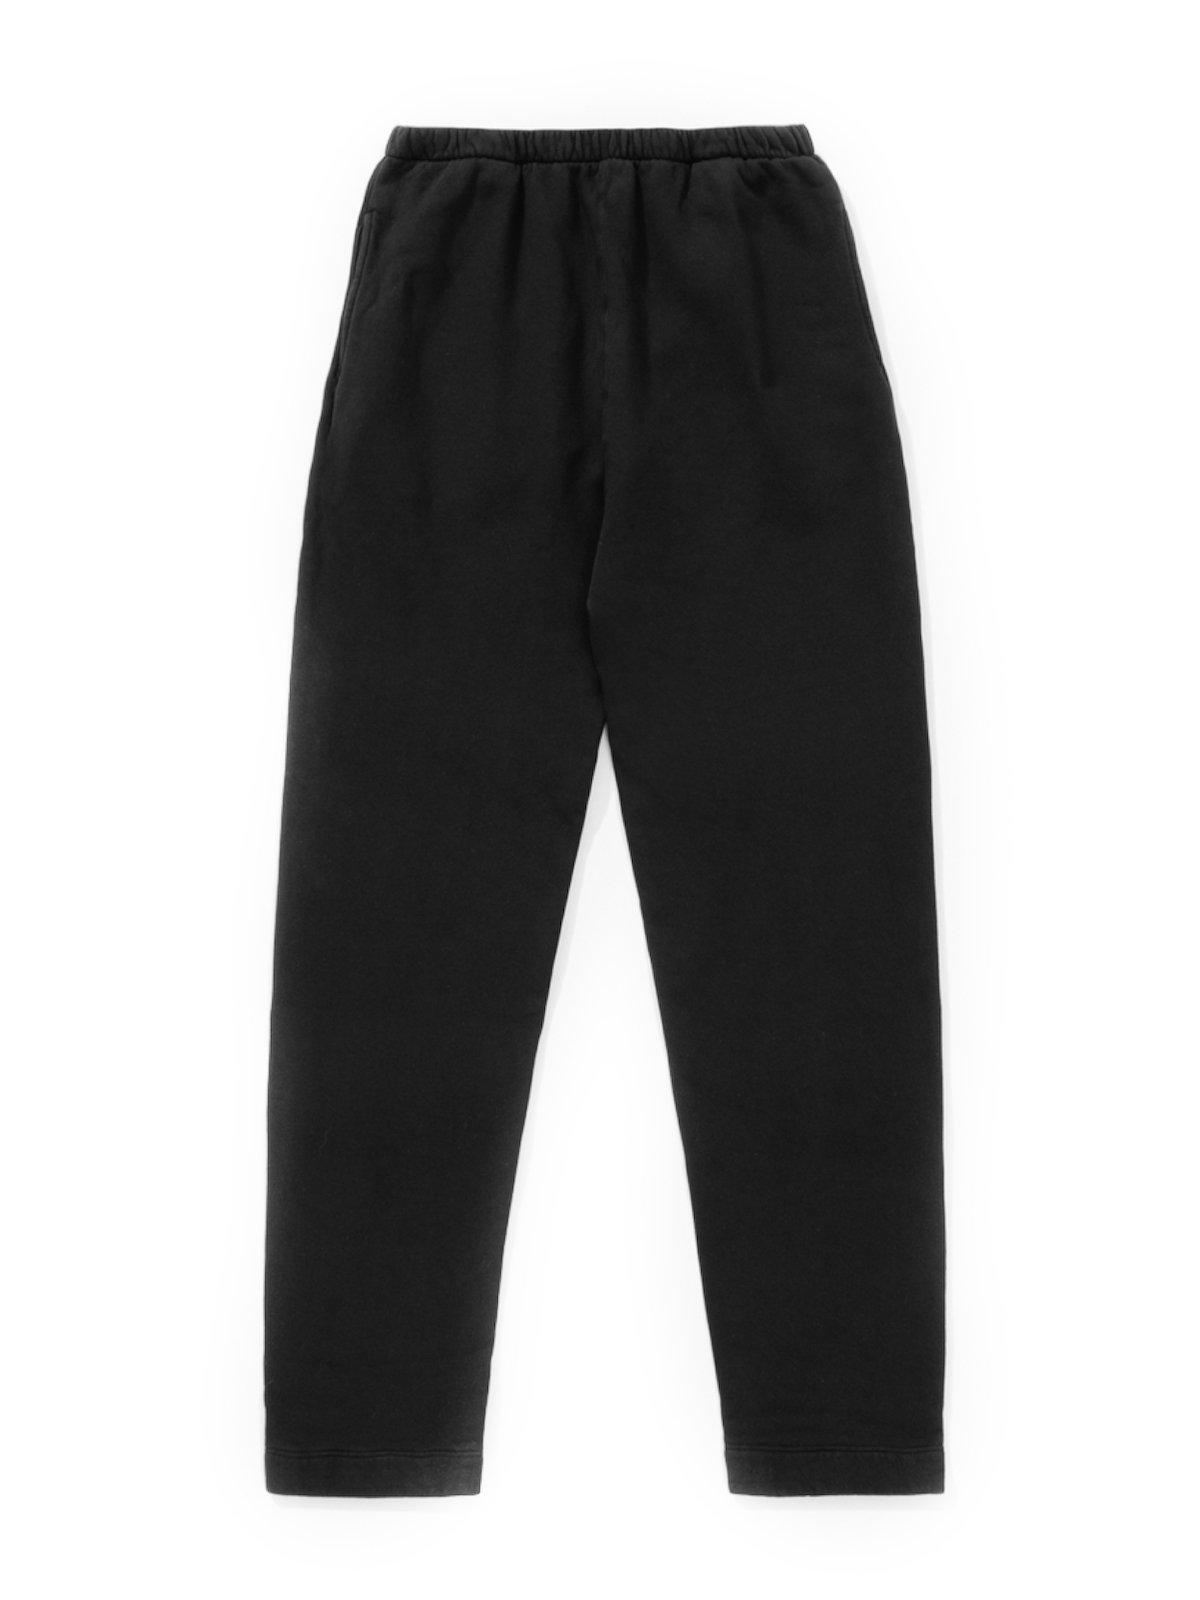 Lady White Co. Sweatpant Black - MORE by Morello Indonesia